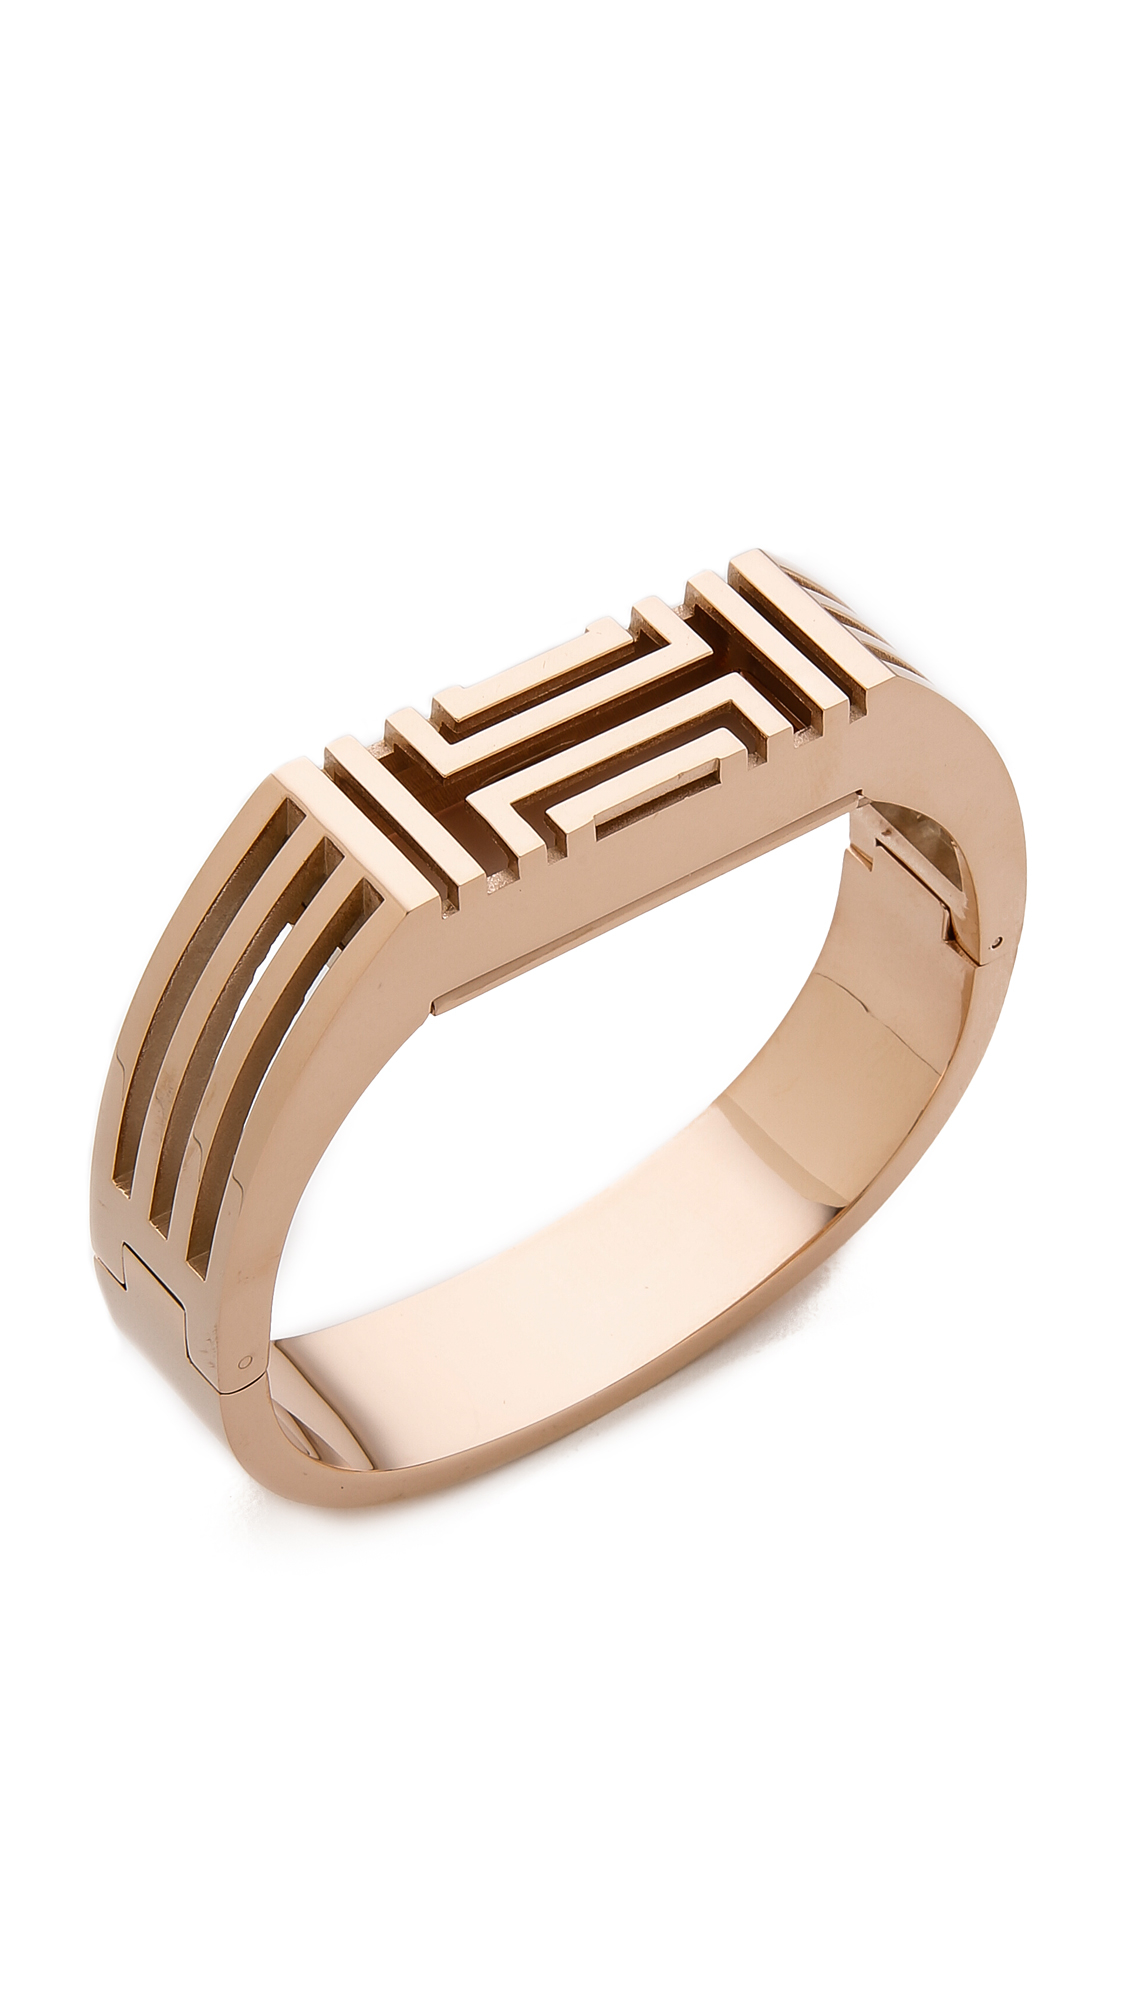 lyst tory burch for fitbit metal hinged bracelet rose. Black Bedroom Furniture Sets. Home Design Ideas